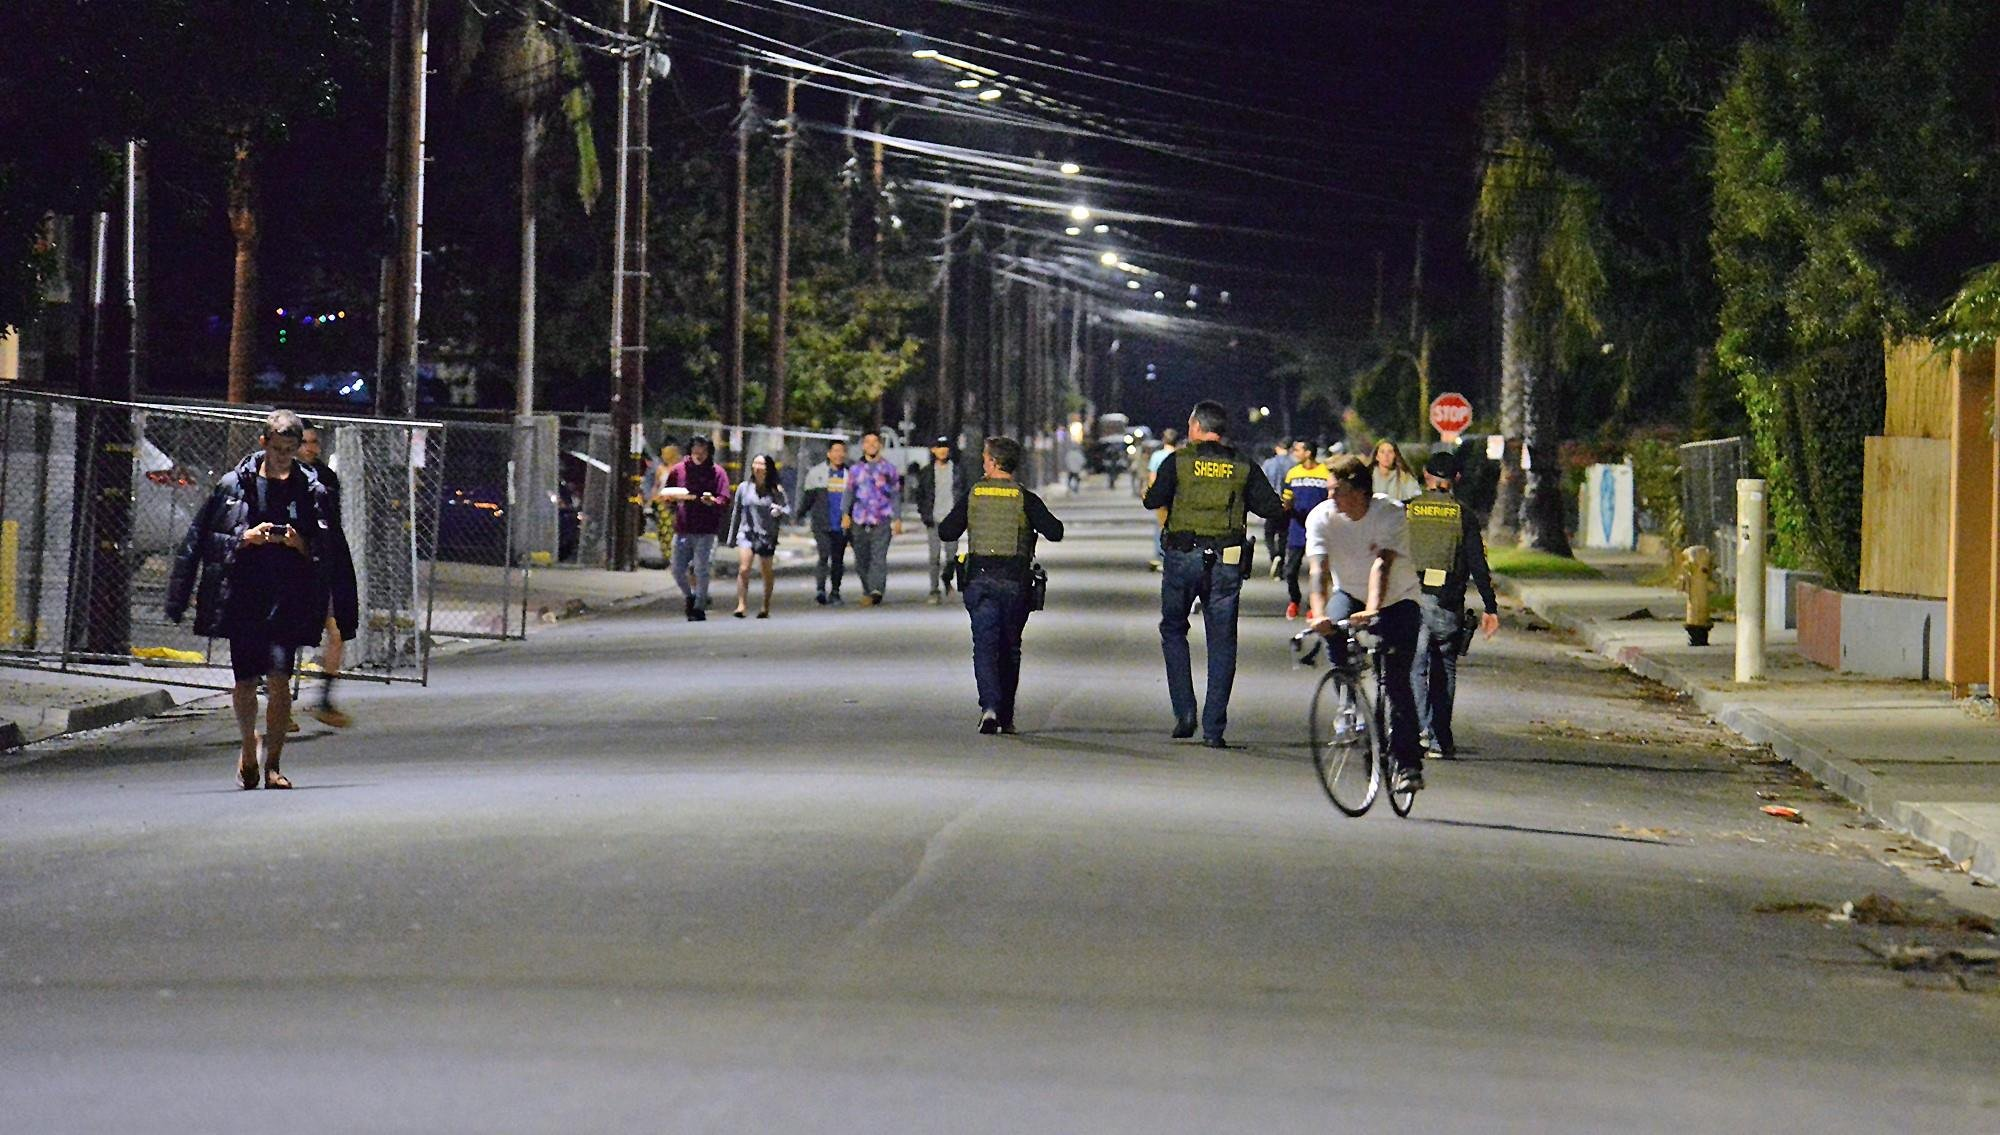 A look at patrols in Isla Vista during a prior Halloween. (Photo: SB COUNTY FIRE)